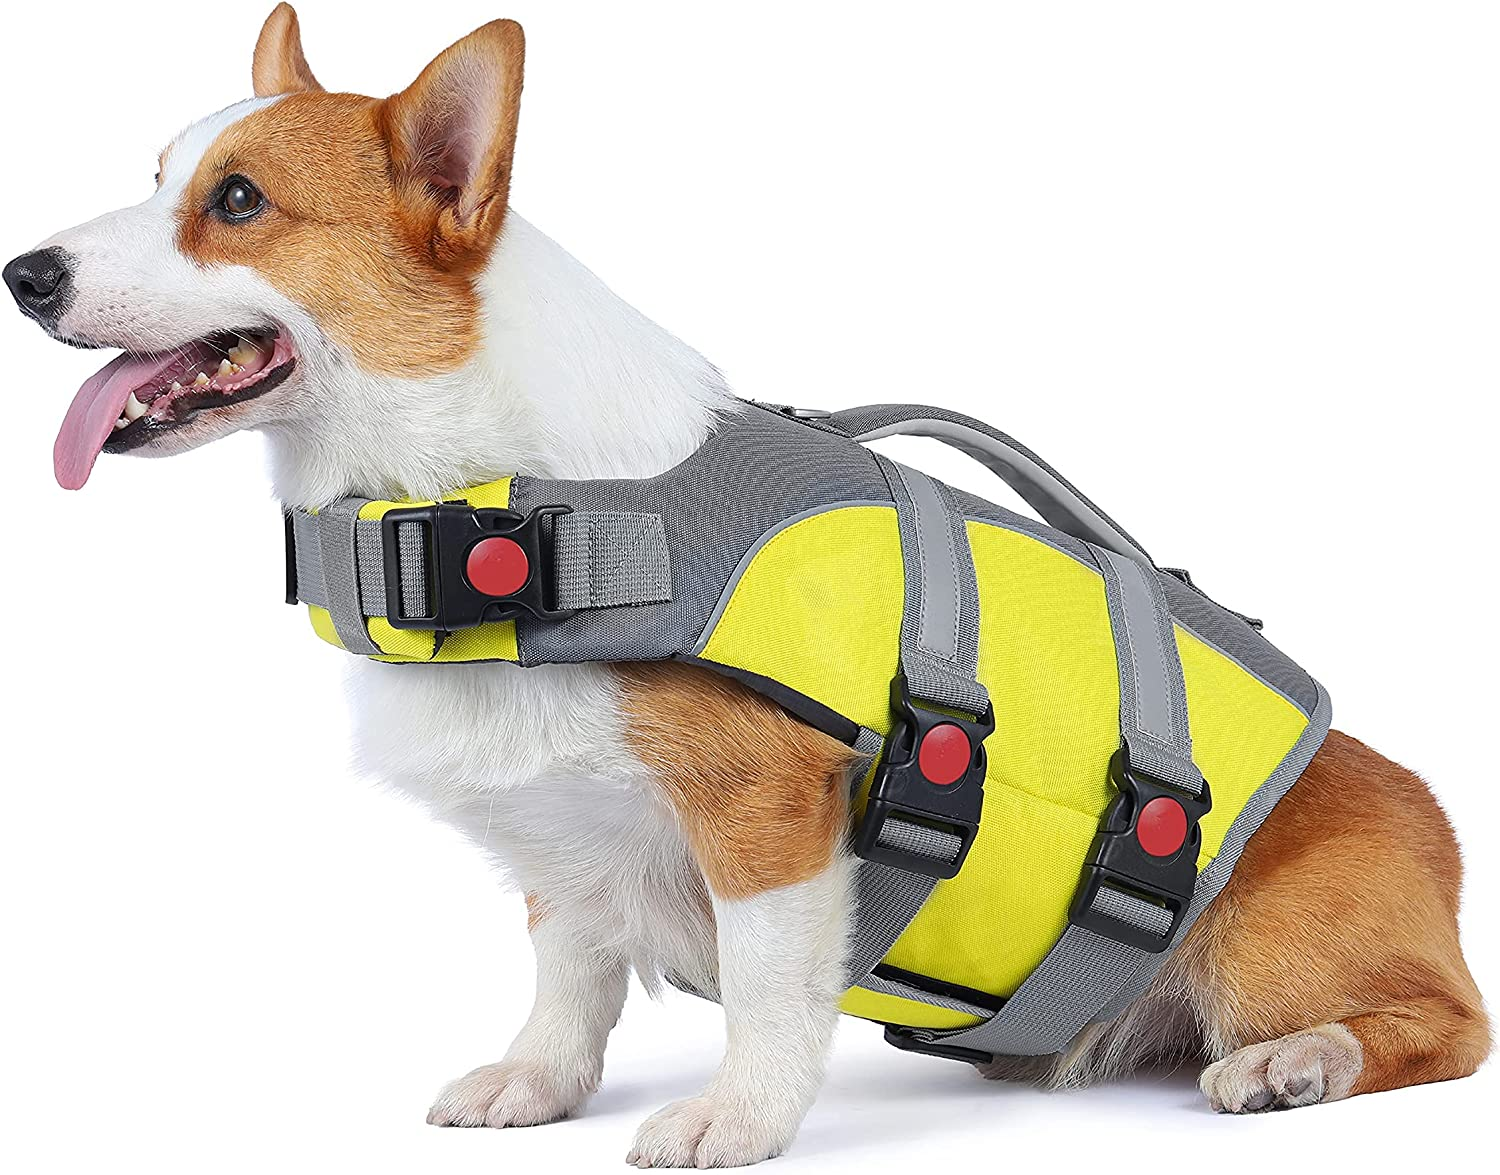 Outlet ☆ Free Shipping Dog Life Jacket Reflective At the price w Swimming and Adjustable